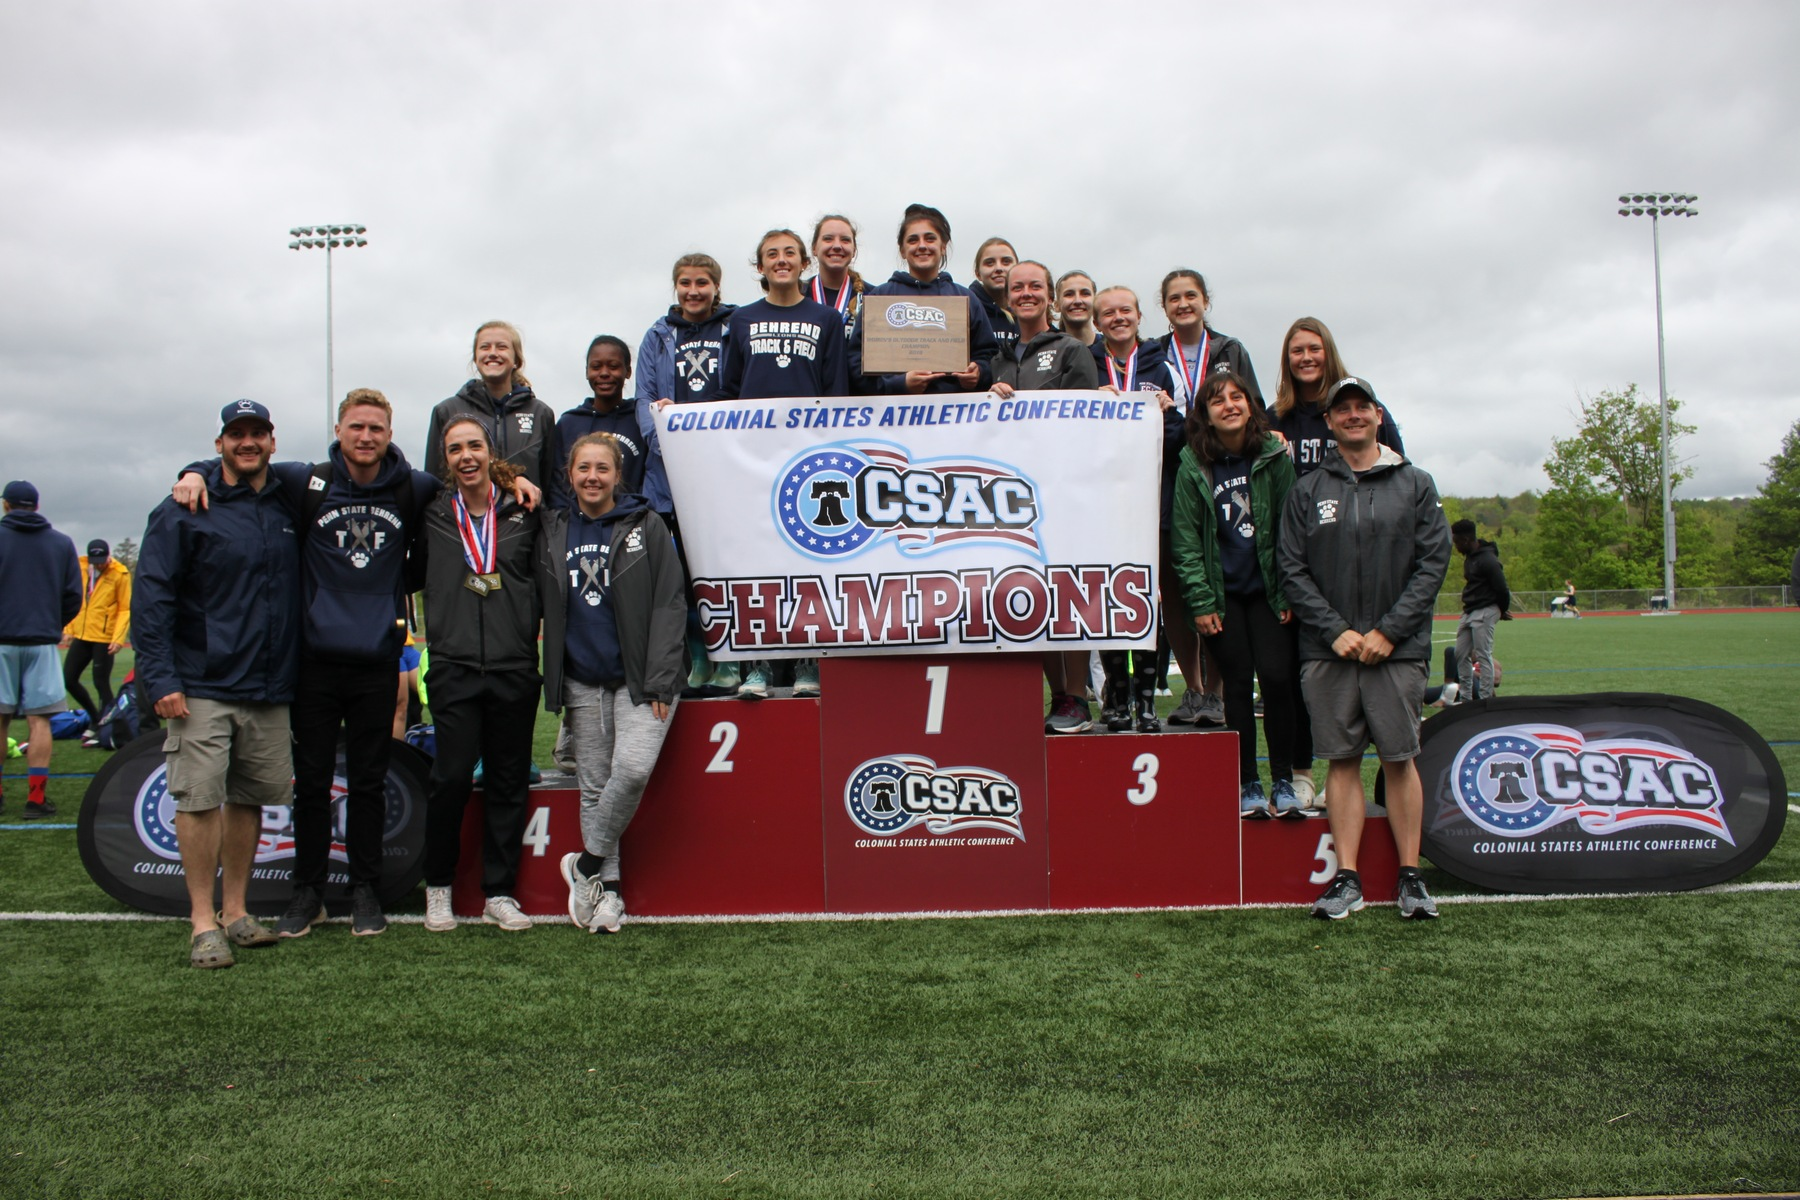 Lions Win CSAC Championship; Sargent and Yenchik Named Athletes of the Year